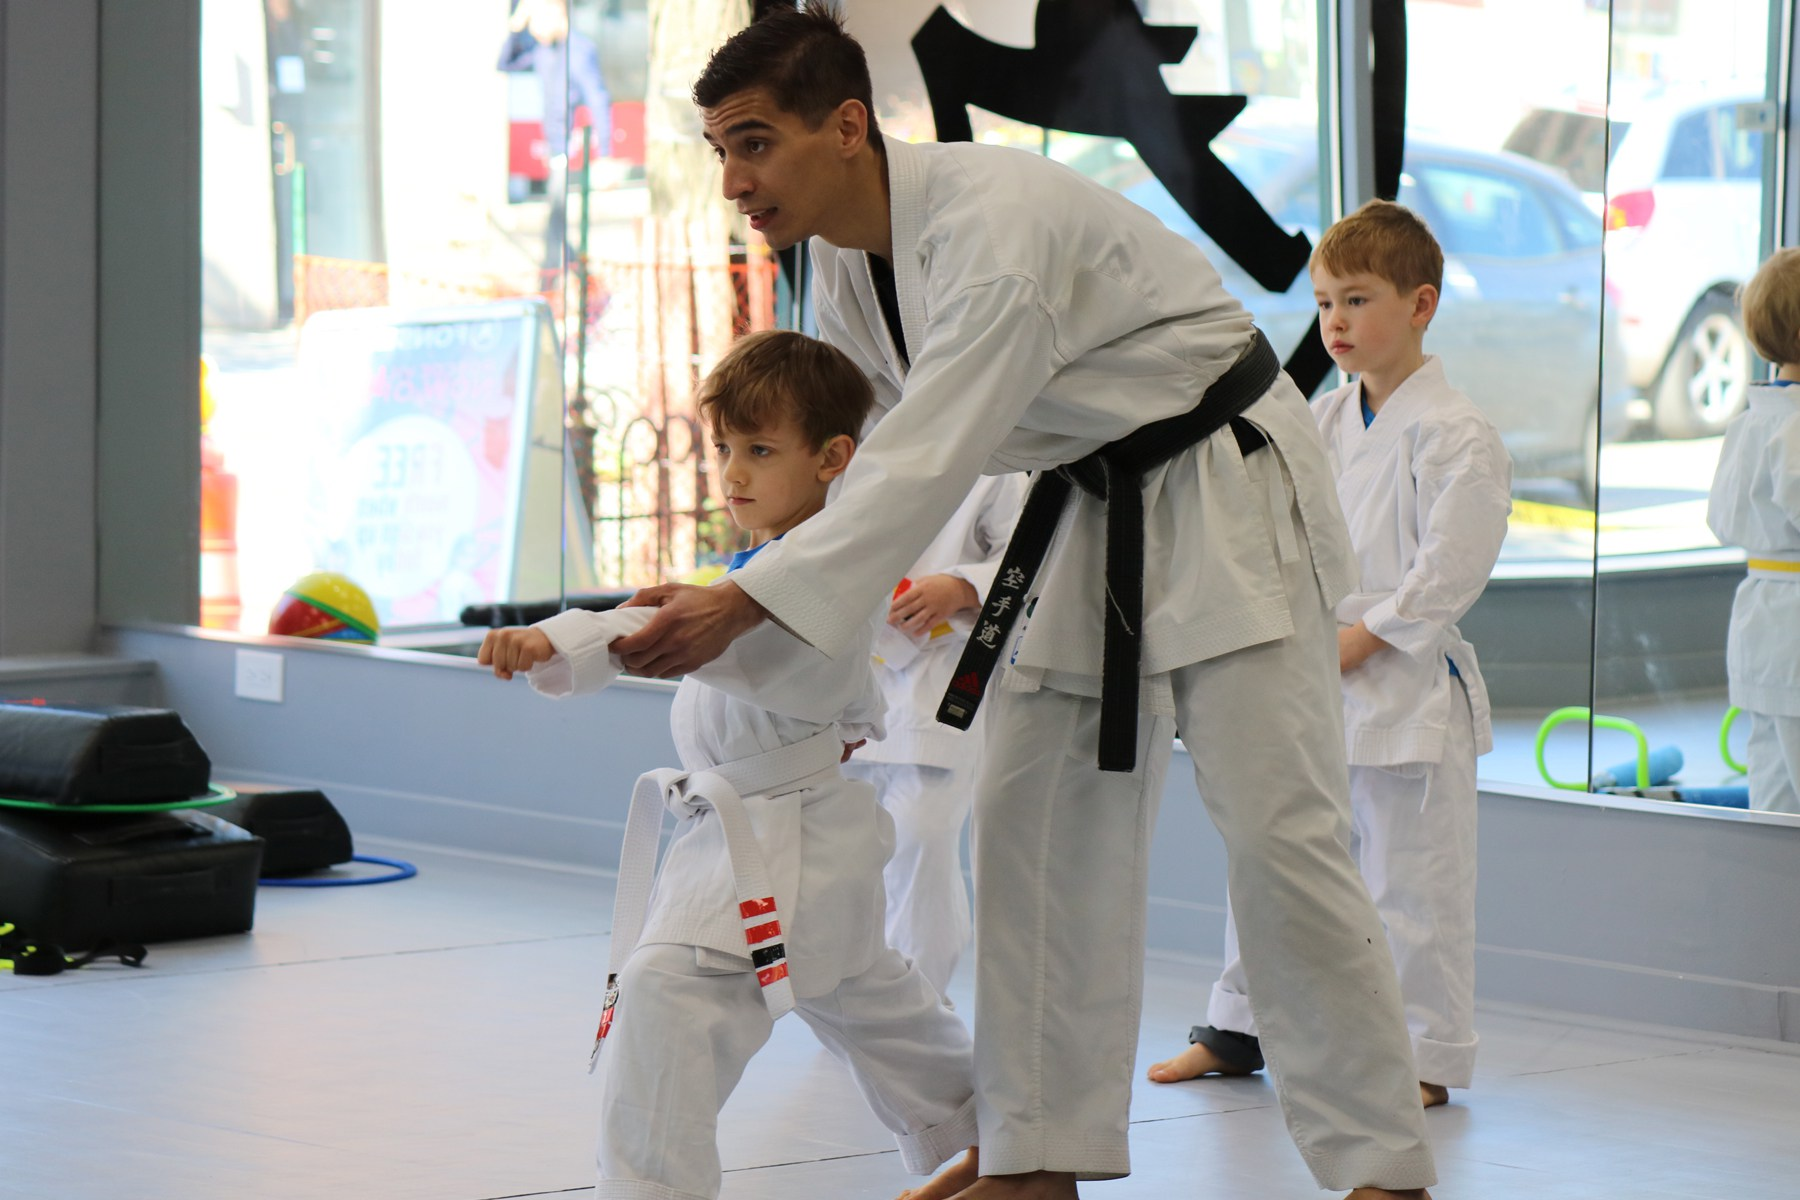 Kid learning karate